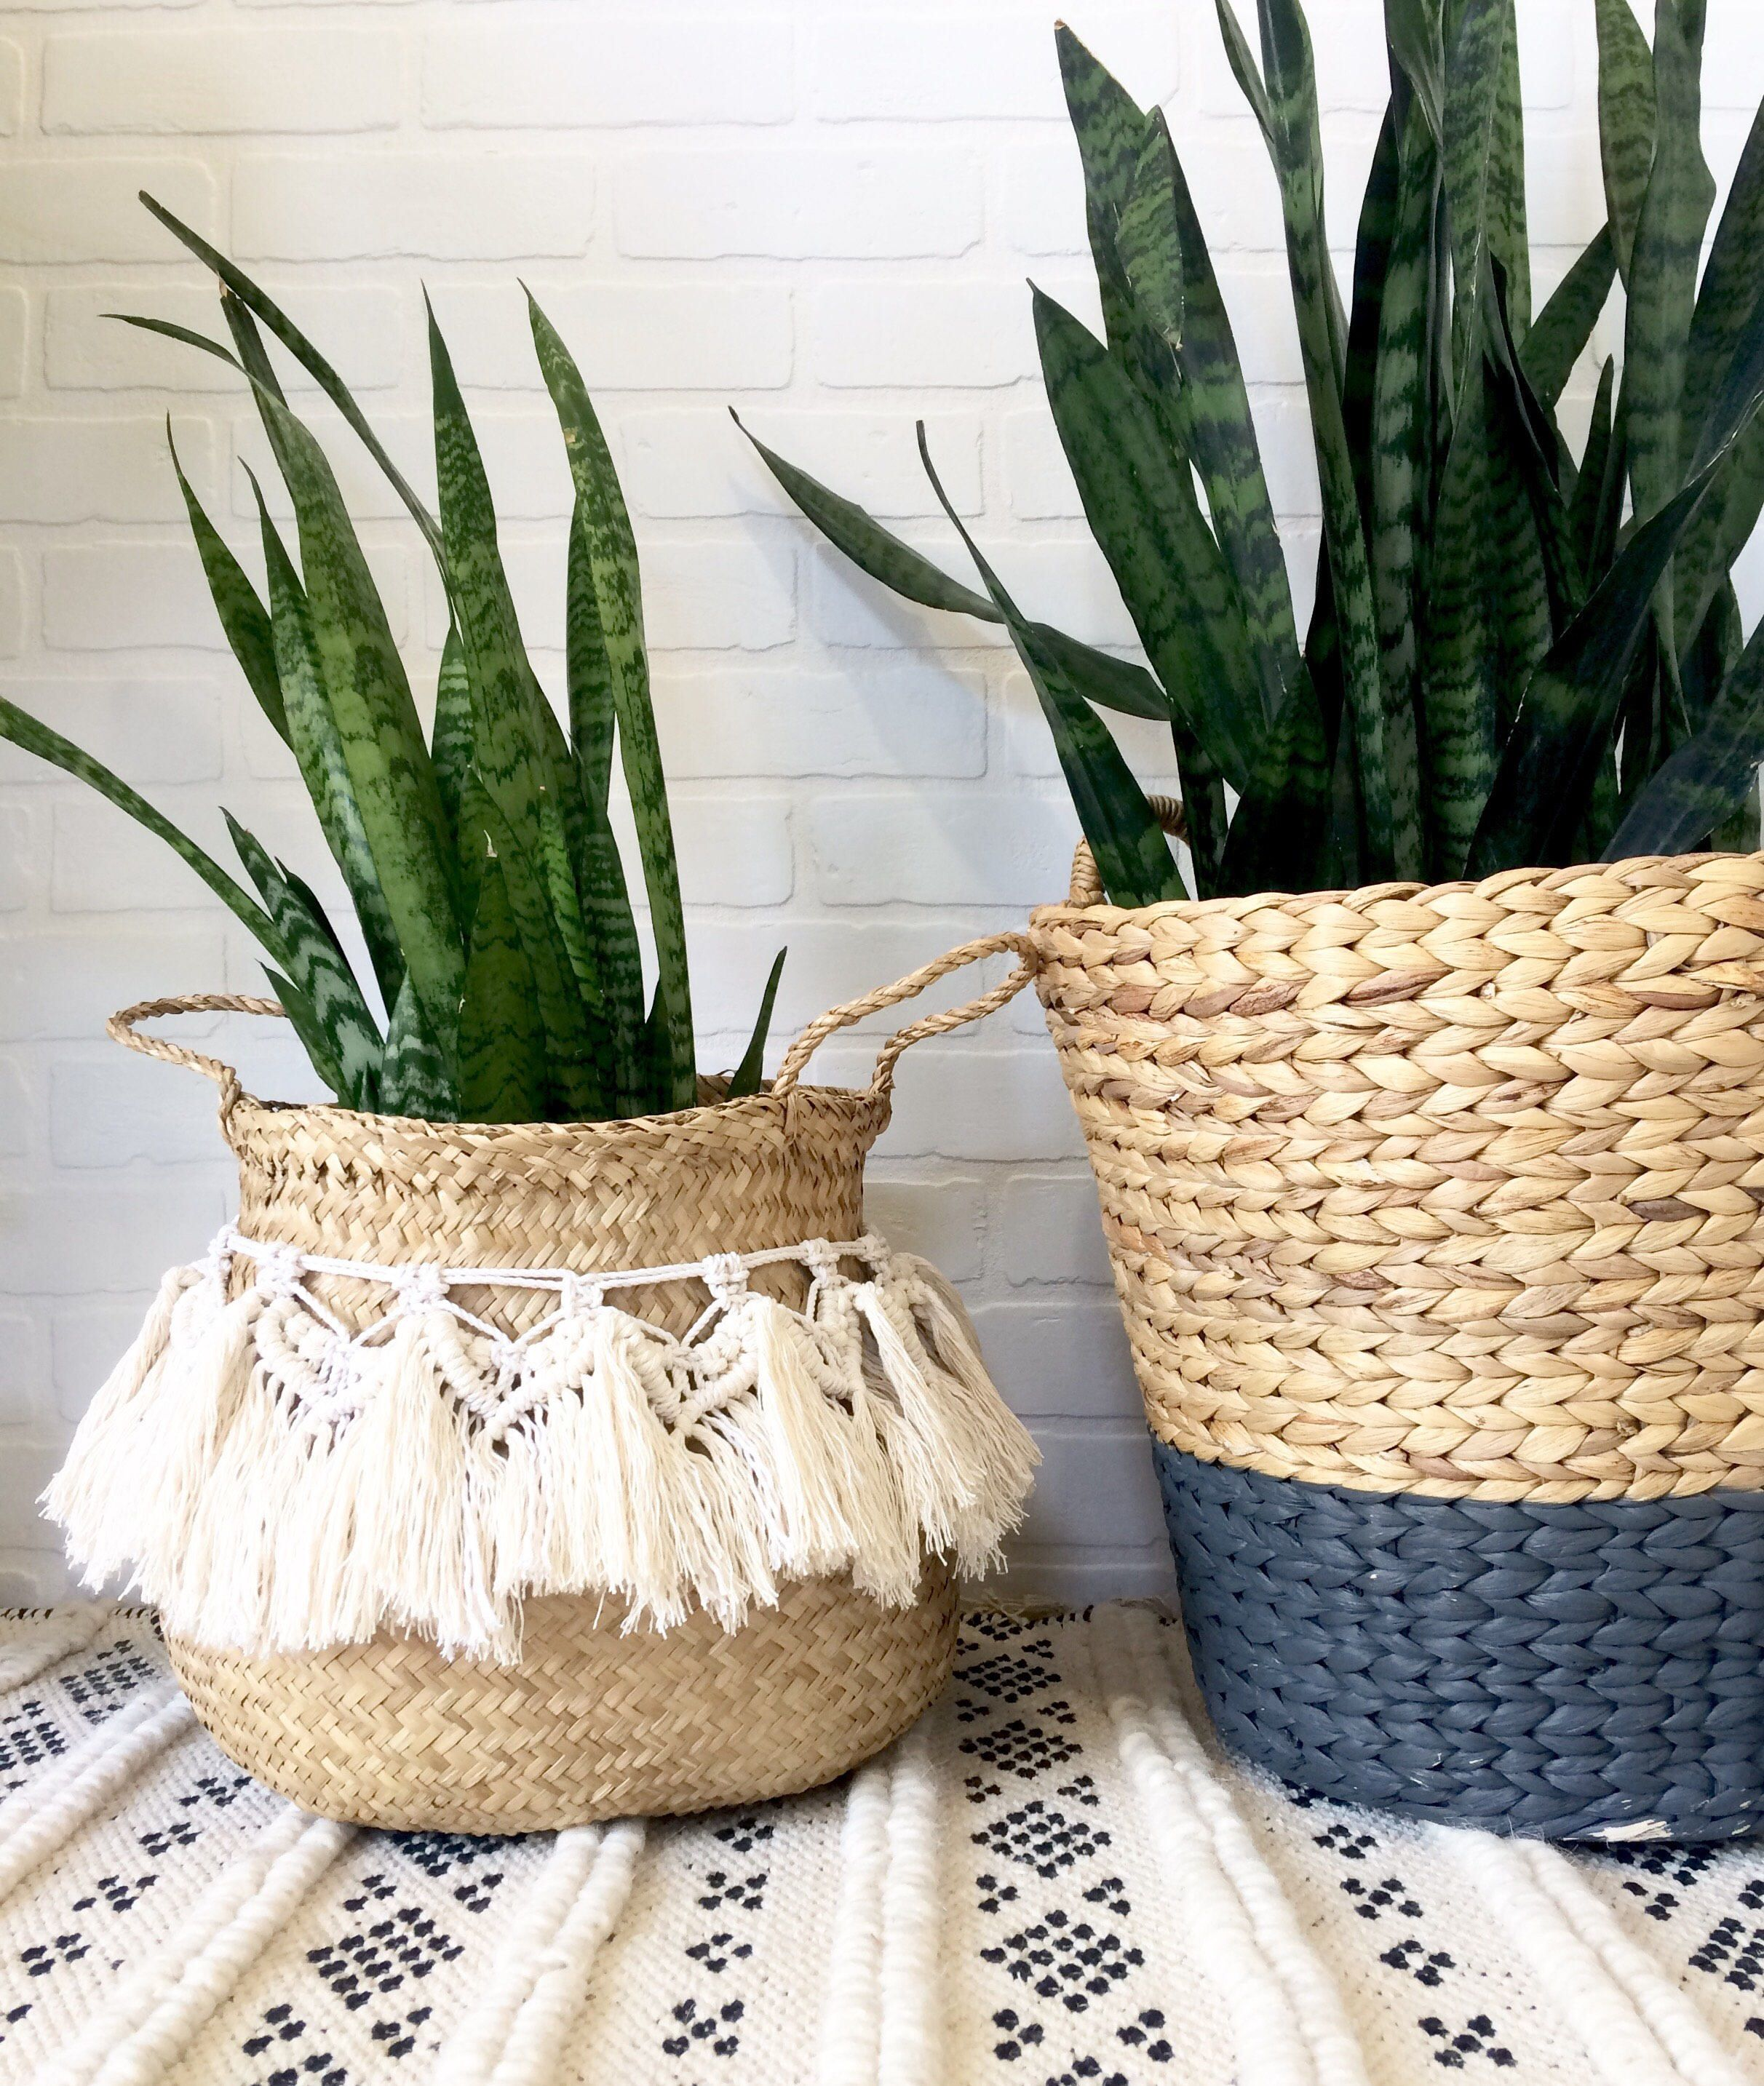 Cool Plants For Your Room Green Thumb Seagrass Fringe Basket Macrame Plant